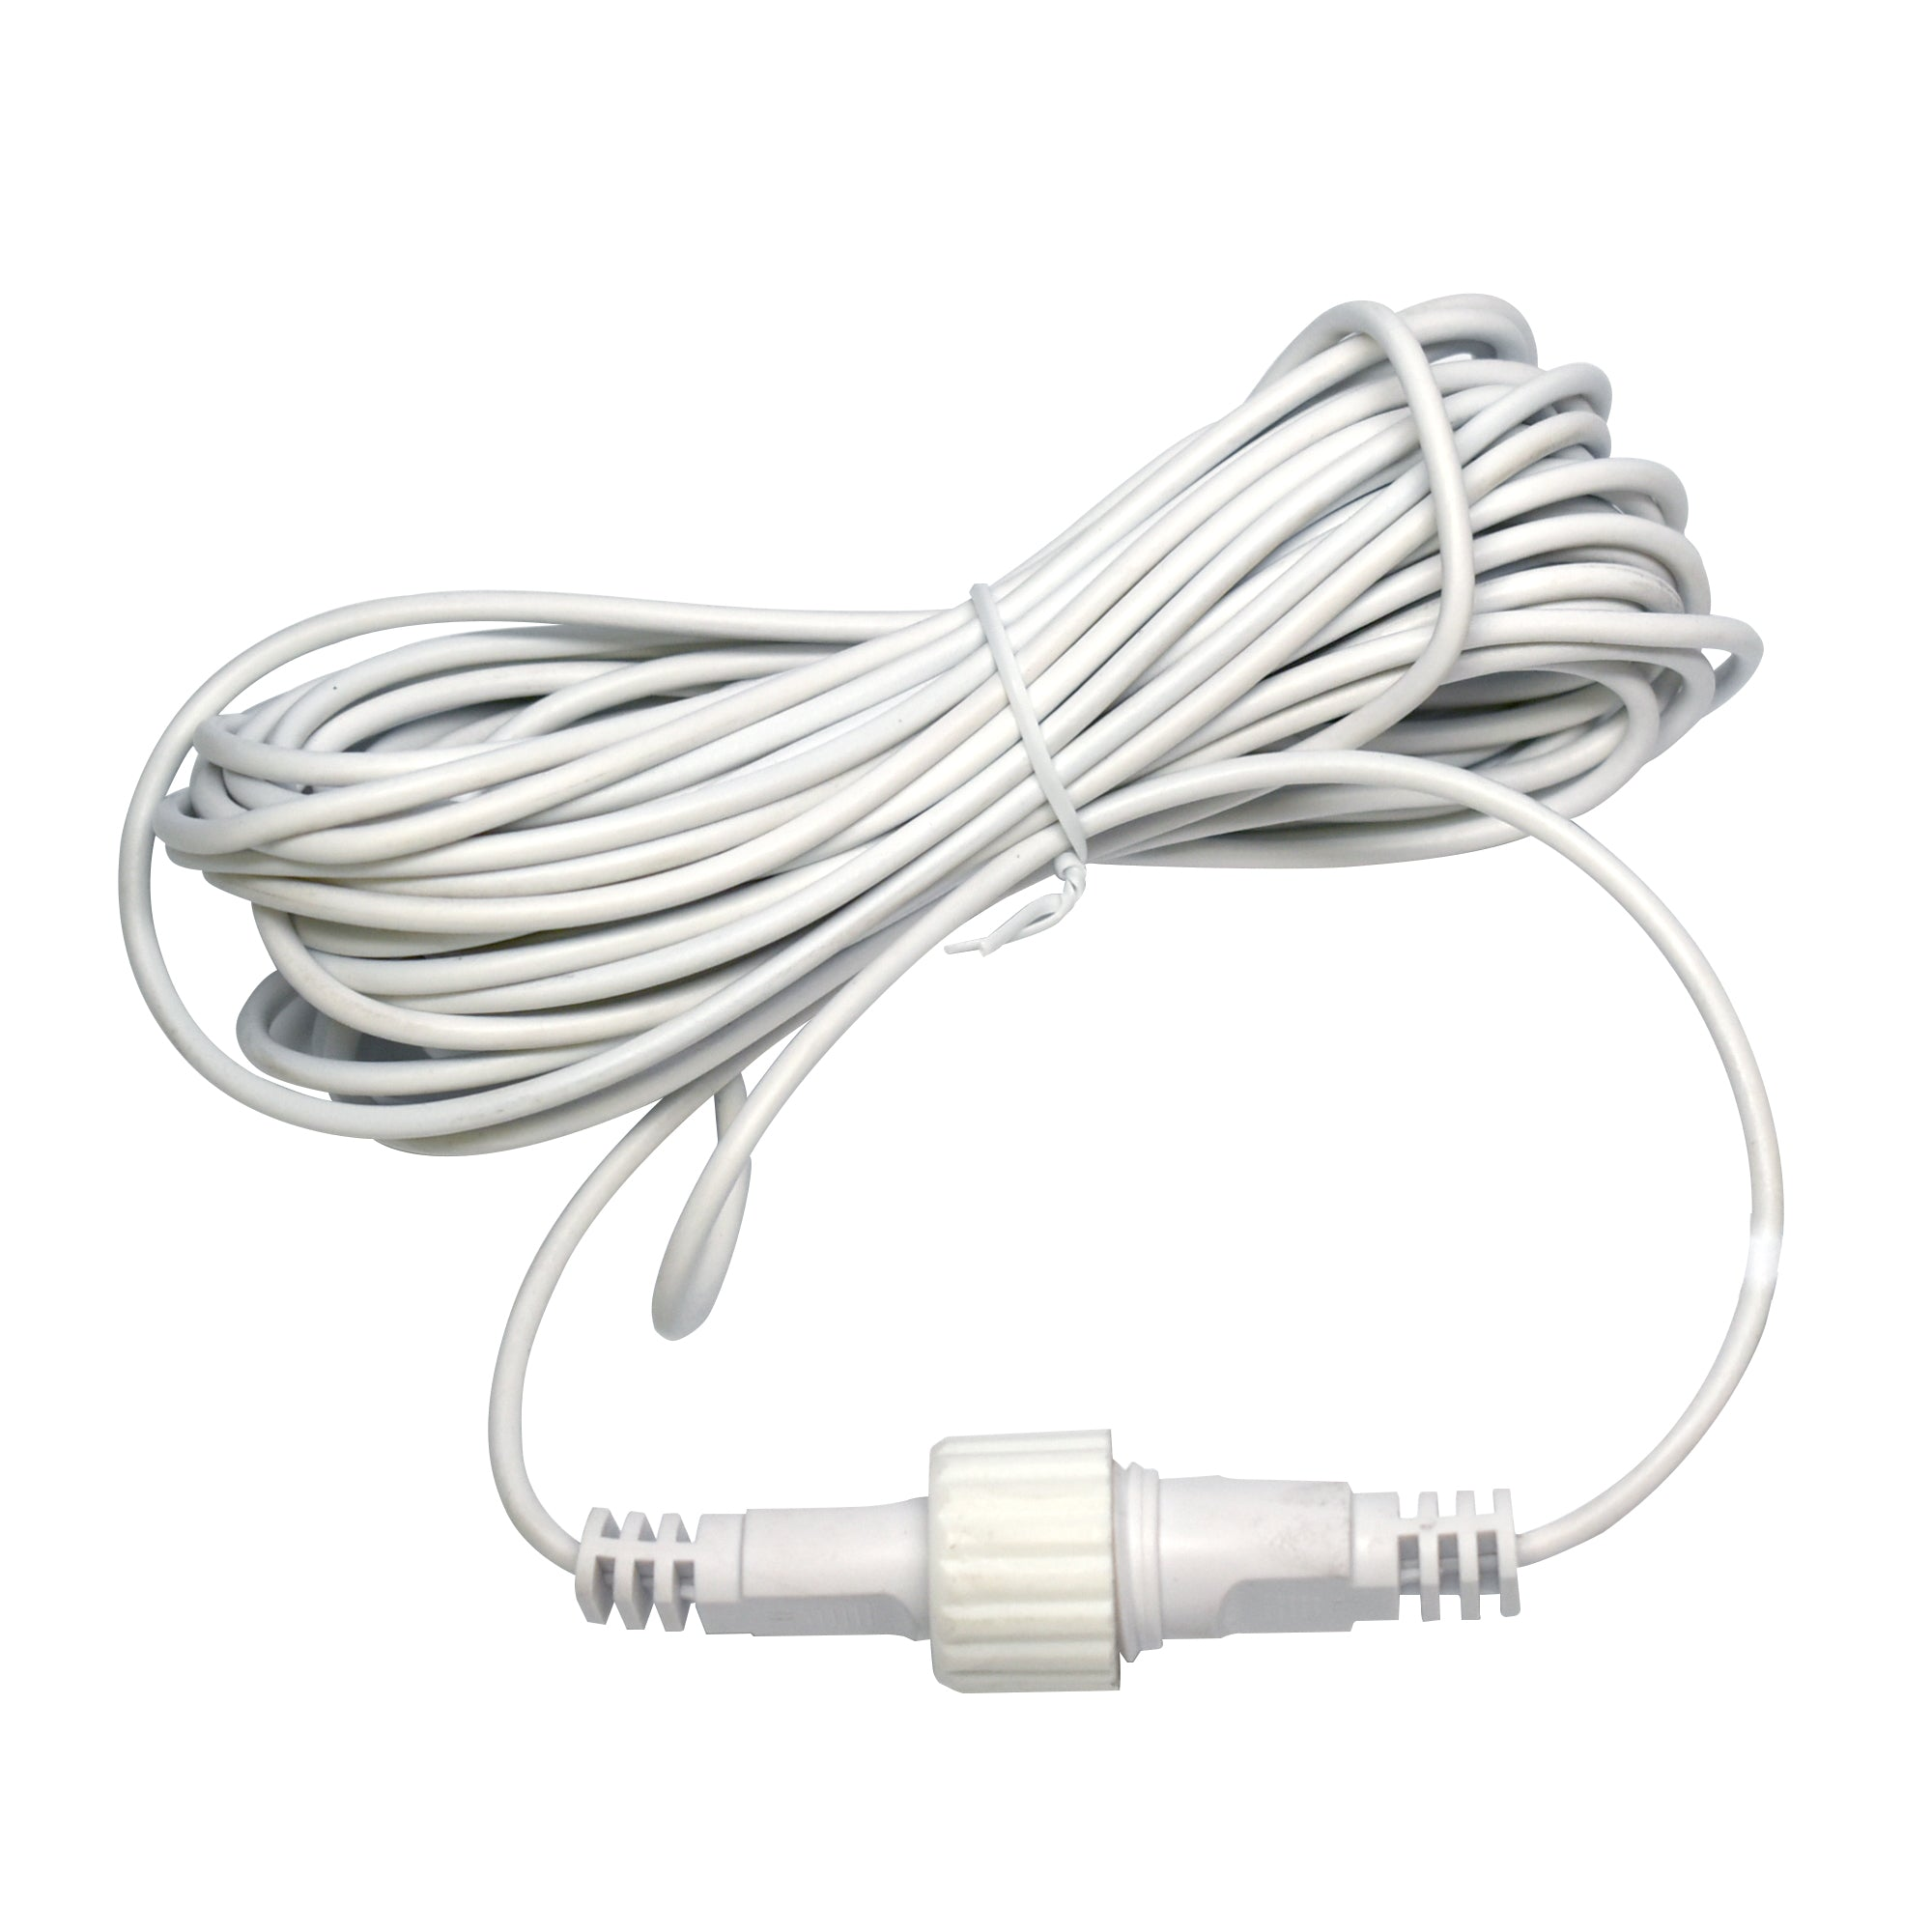 30' Extension Cord for Defiant Solar Security Light (Model